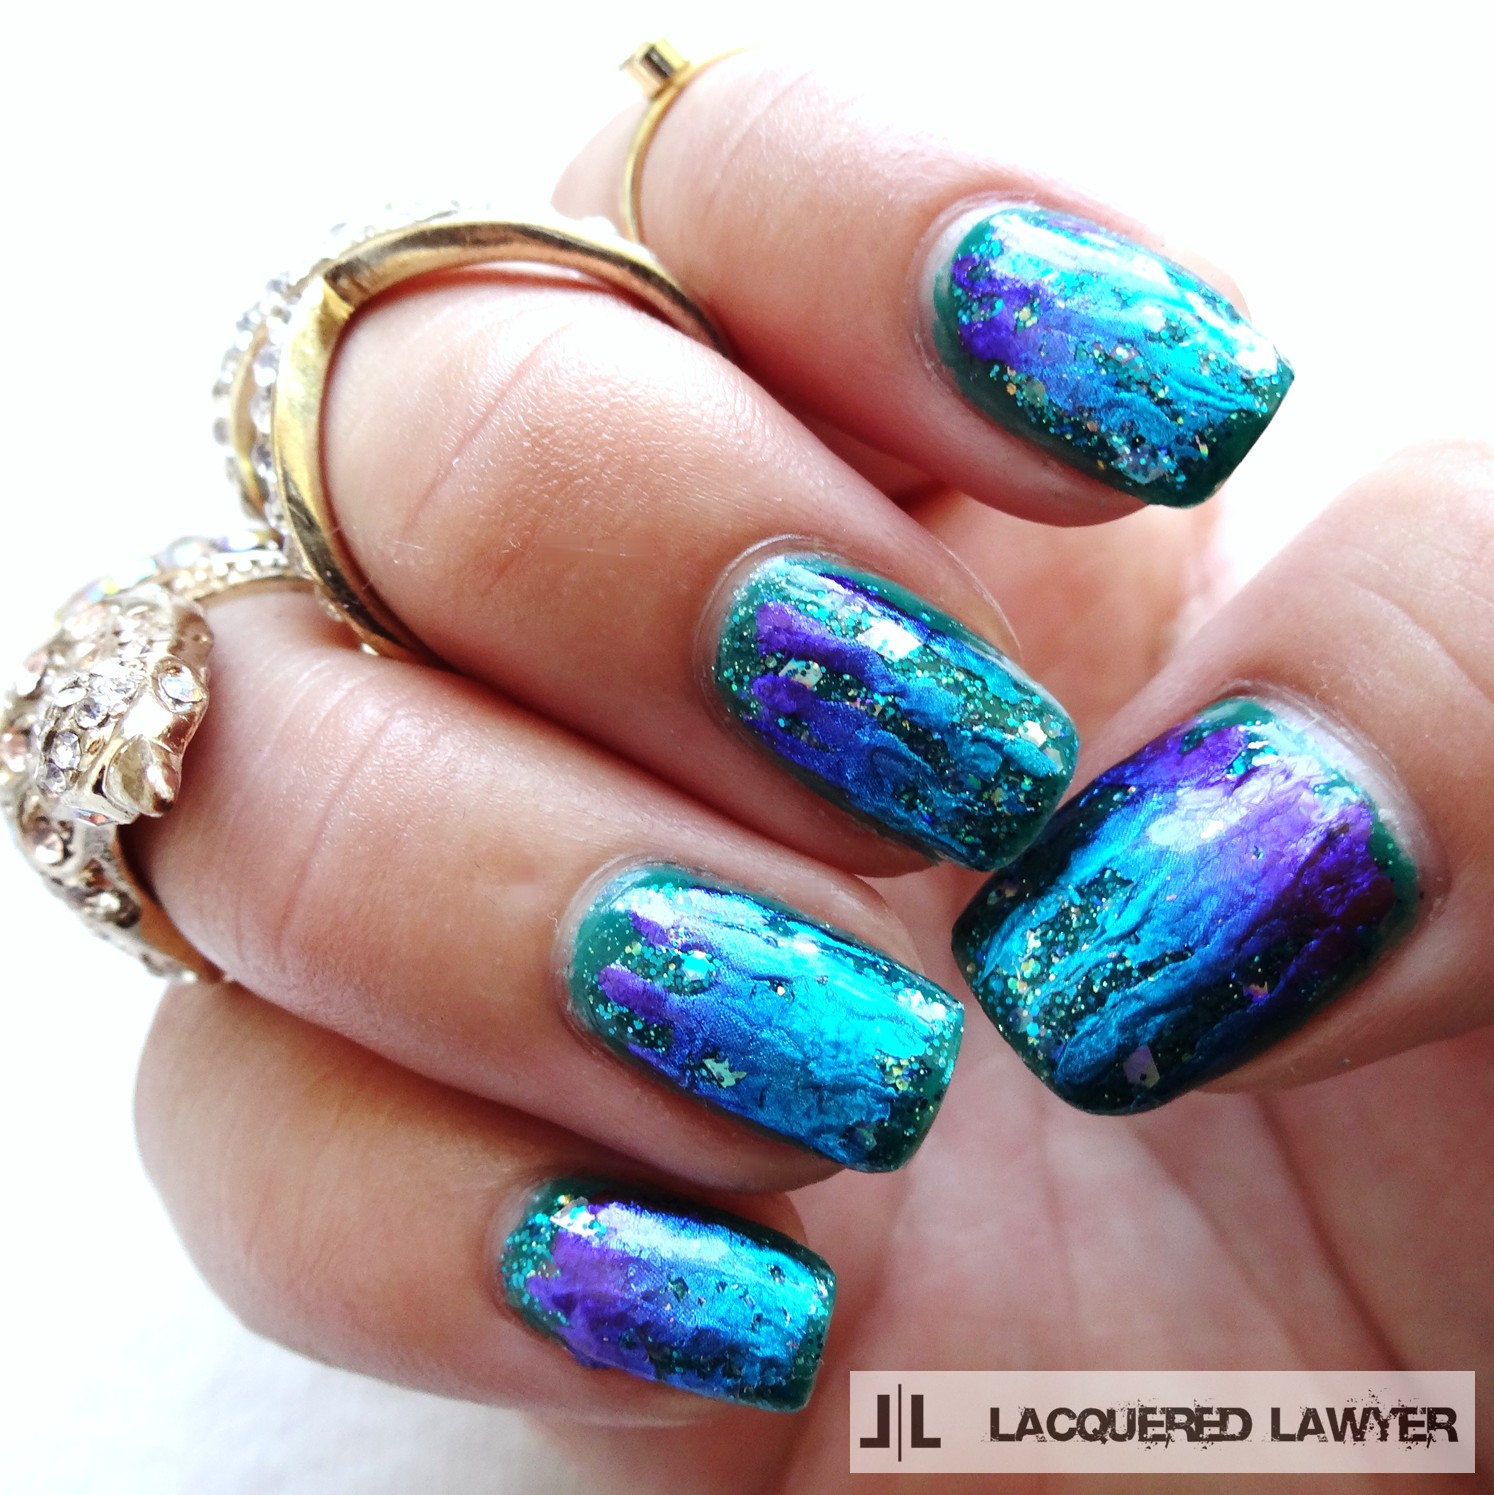 Lacquered lawyer nail art blog foil fantasy foil fantasy teal foil nail art prinsesfo Choice Image